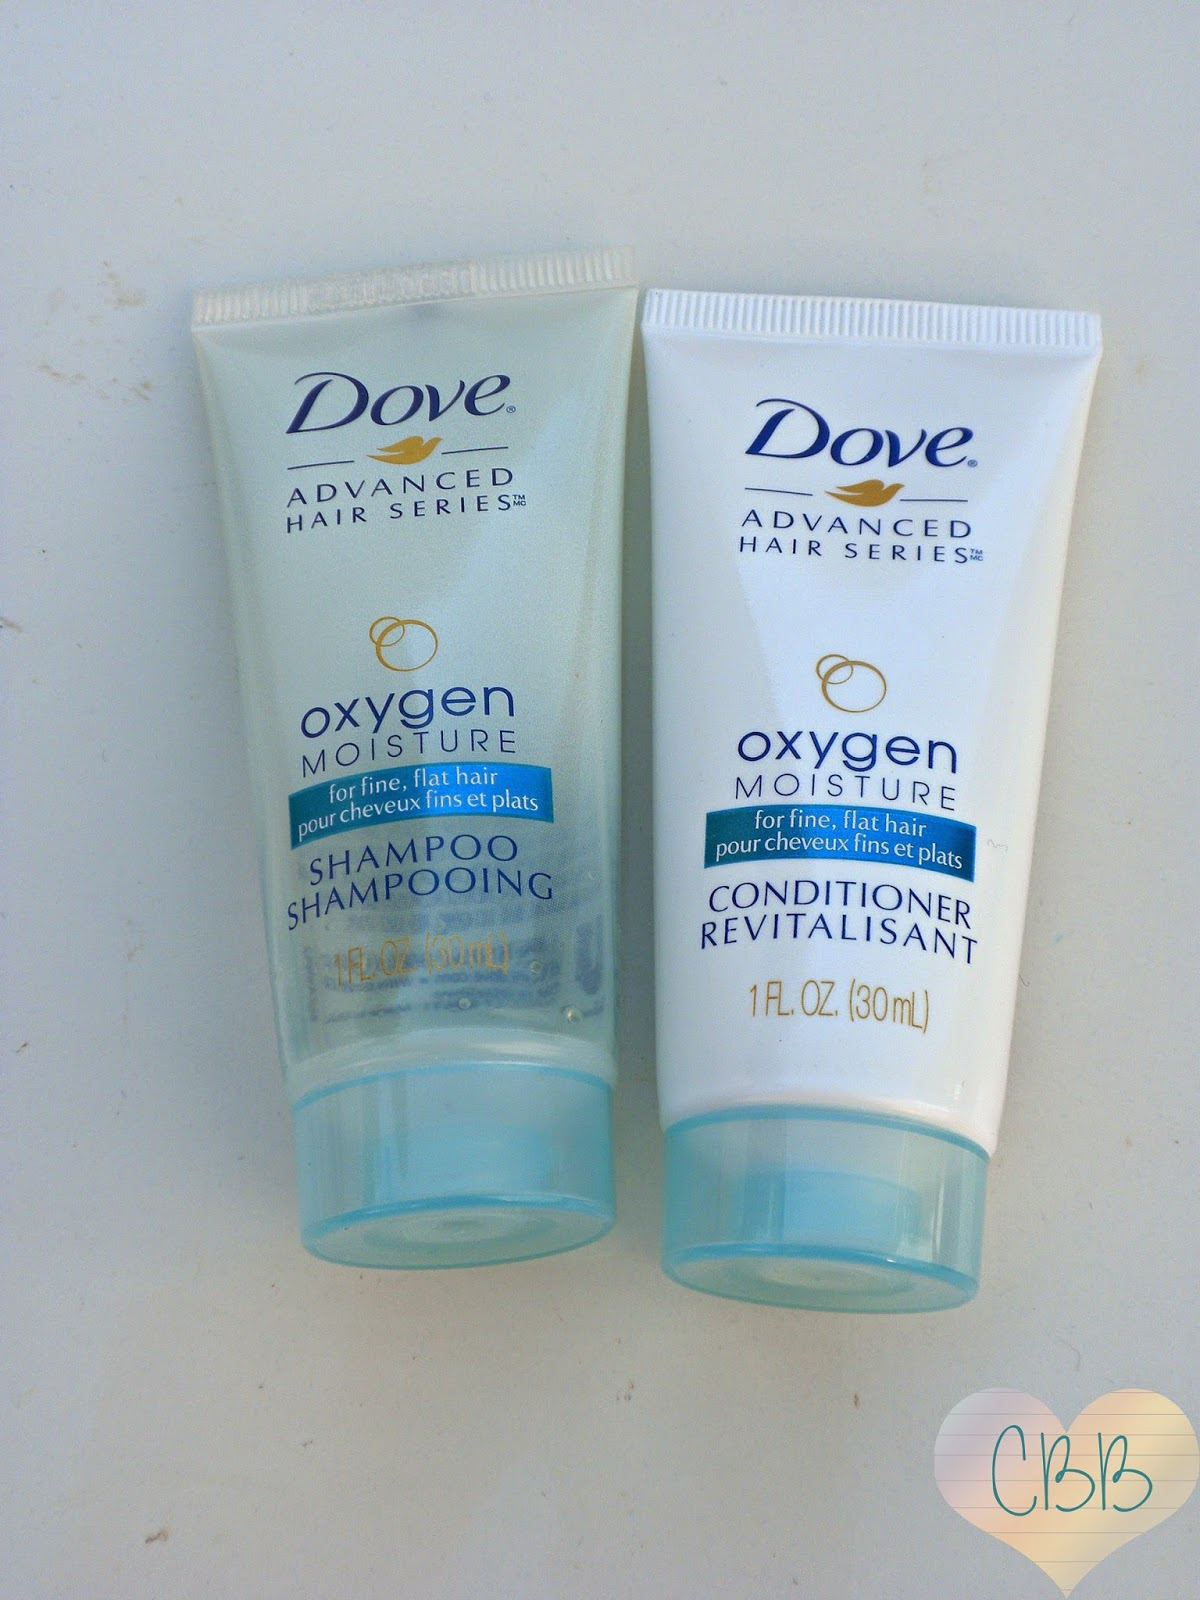 DOVE Oxygen Moisture Shampoo and Conditioner ($5 each for 12oz)